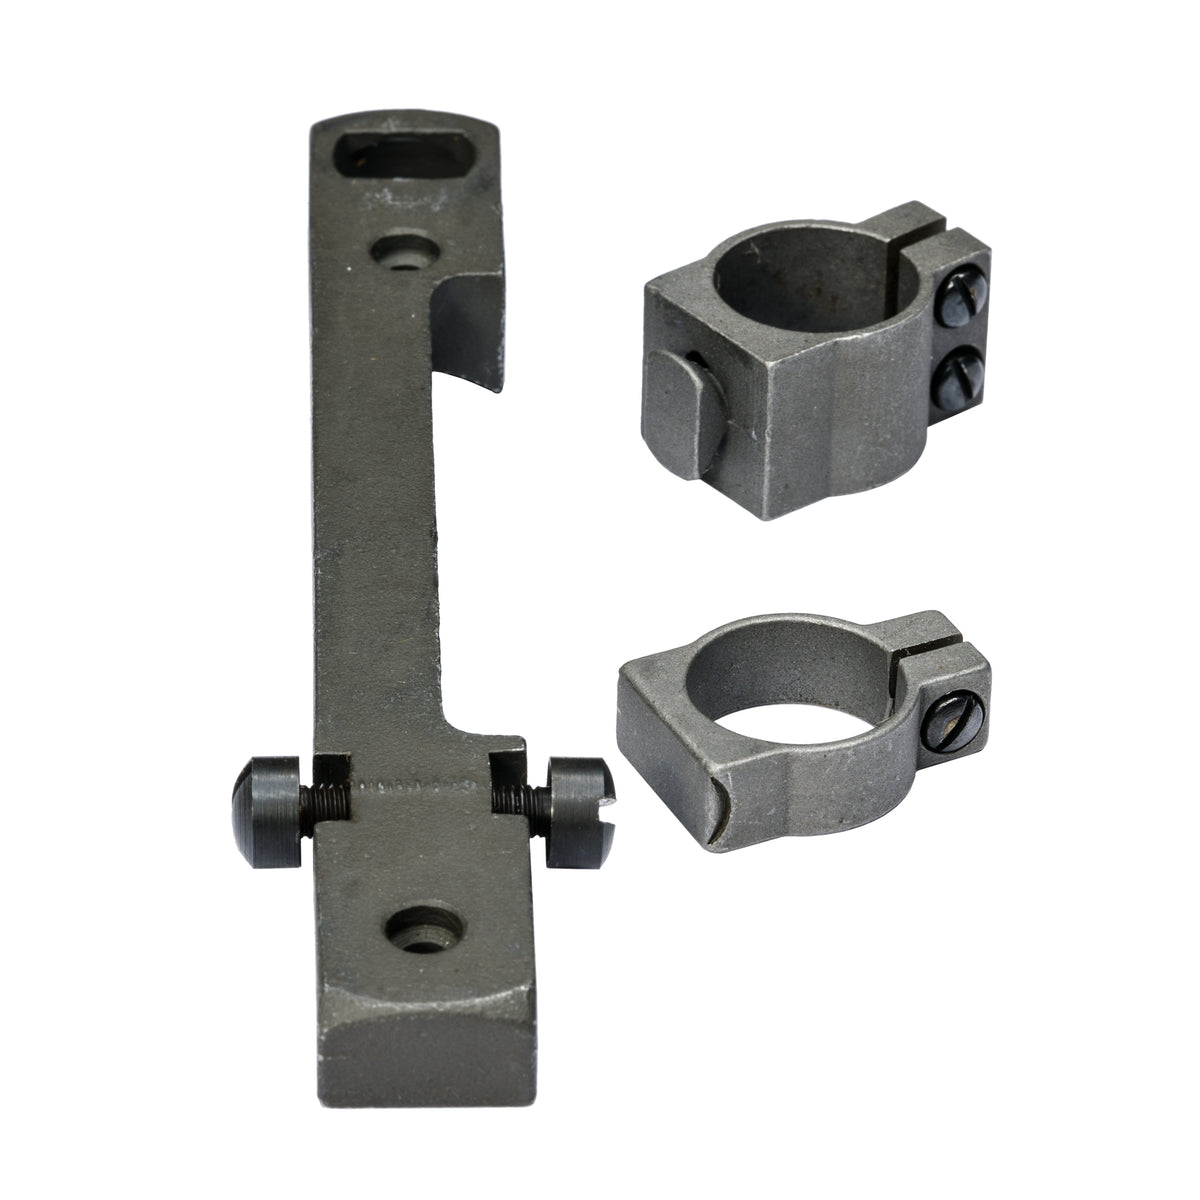 M73 Mount for 03A3 Springfield - Rings Disassembled